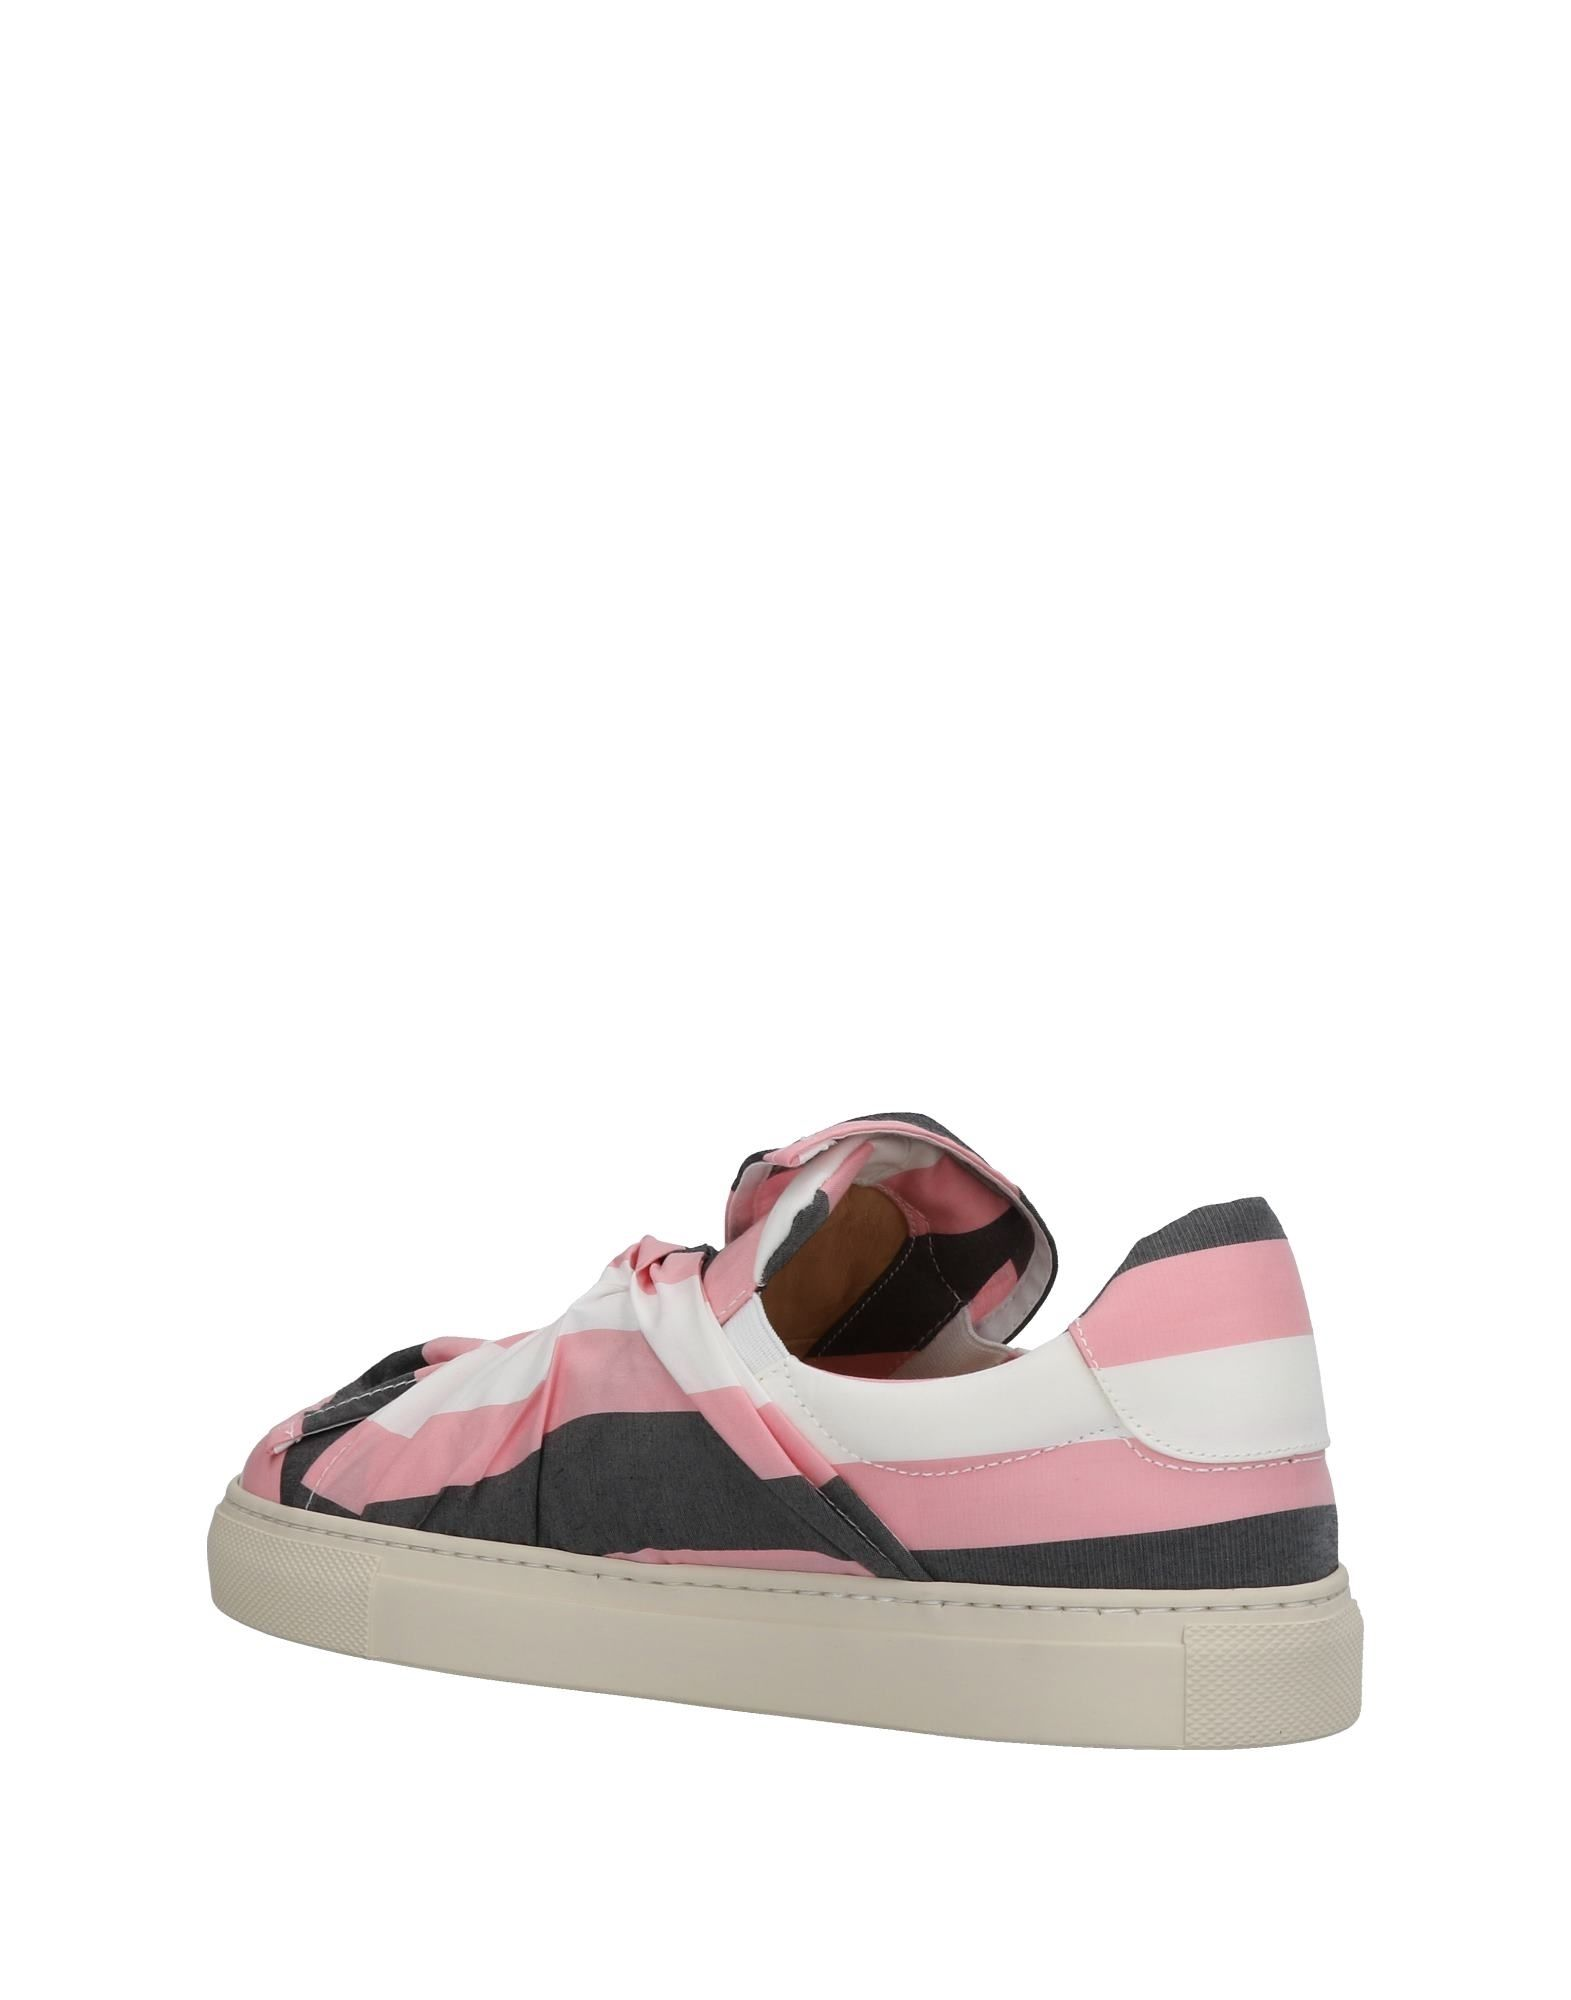 Sneakers Ports 1961 Donna Donna 1961 - 11440408LX 592b64